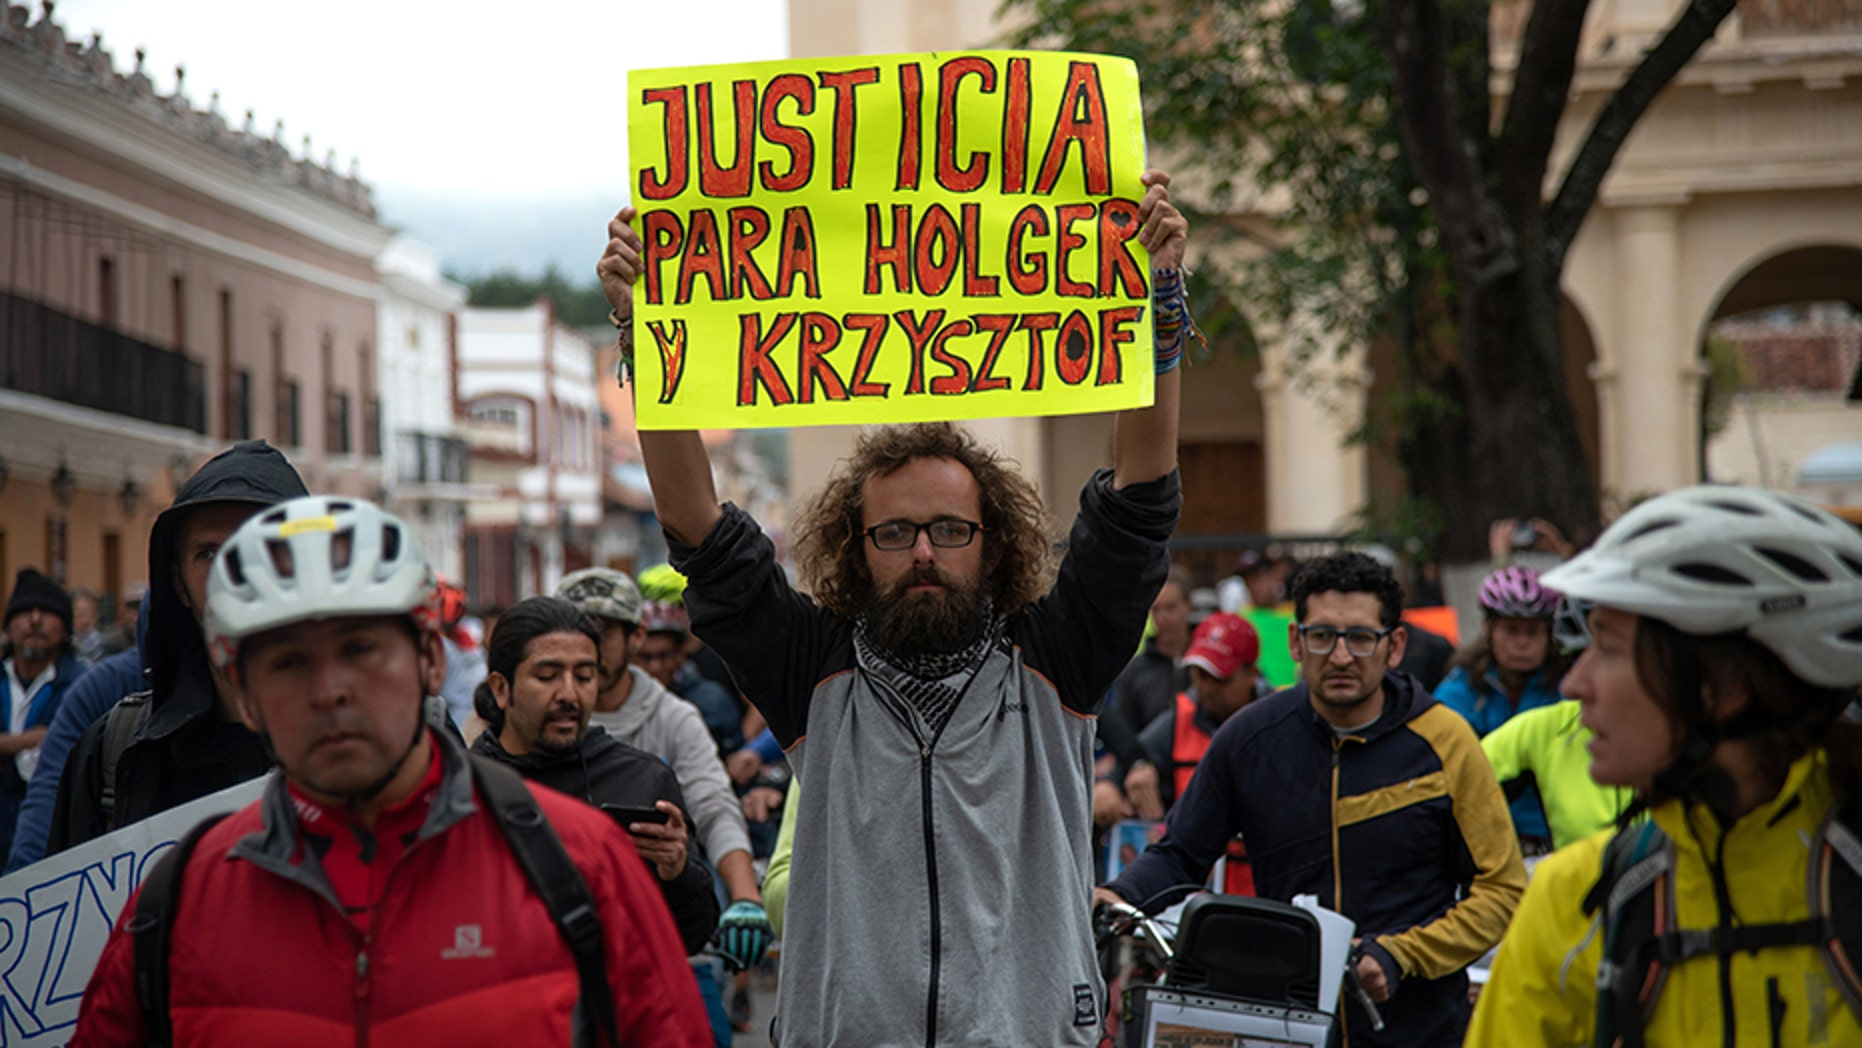 Friends of Holger Franz Hagenbusch and Krzysztof Chmielewski-Podroznik, cyclists who disappeared in the Mexican state of Chiapas, held a rally May 6 in San Cristobal de las Casas.